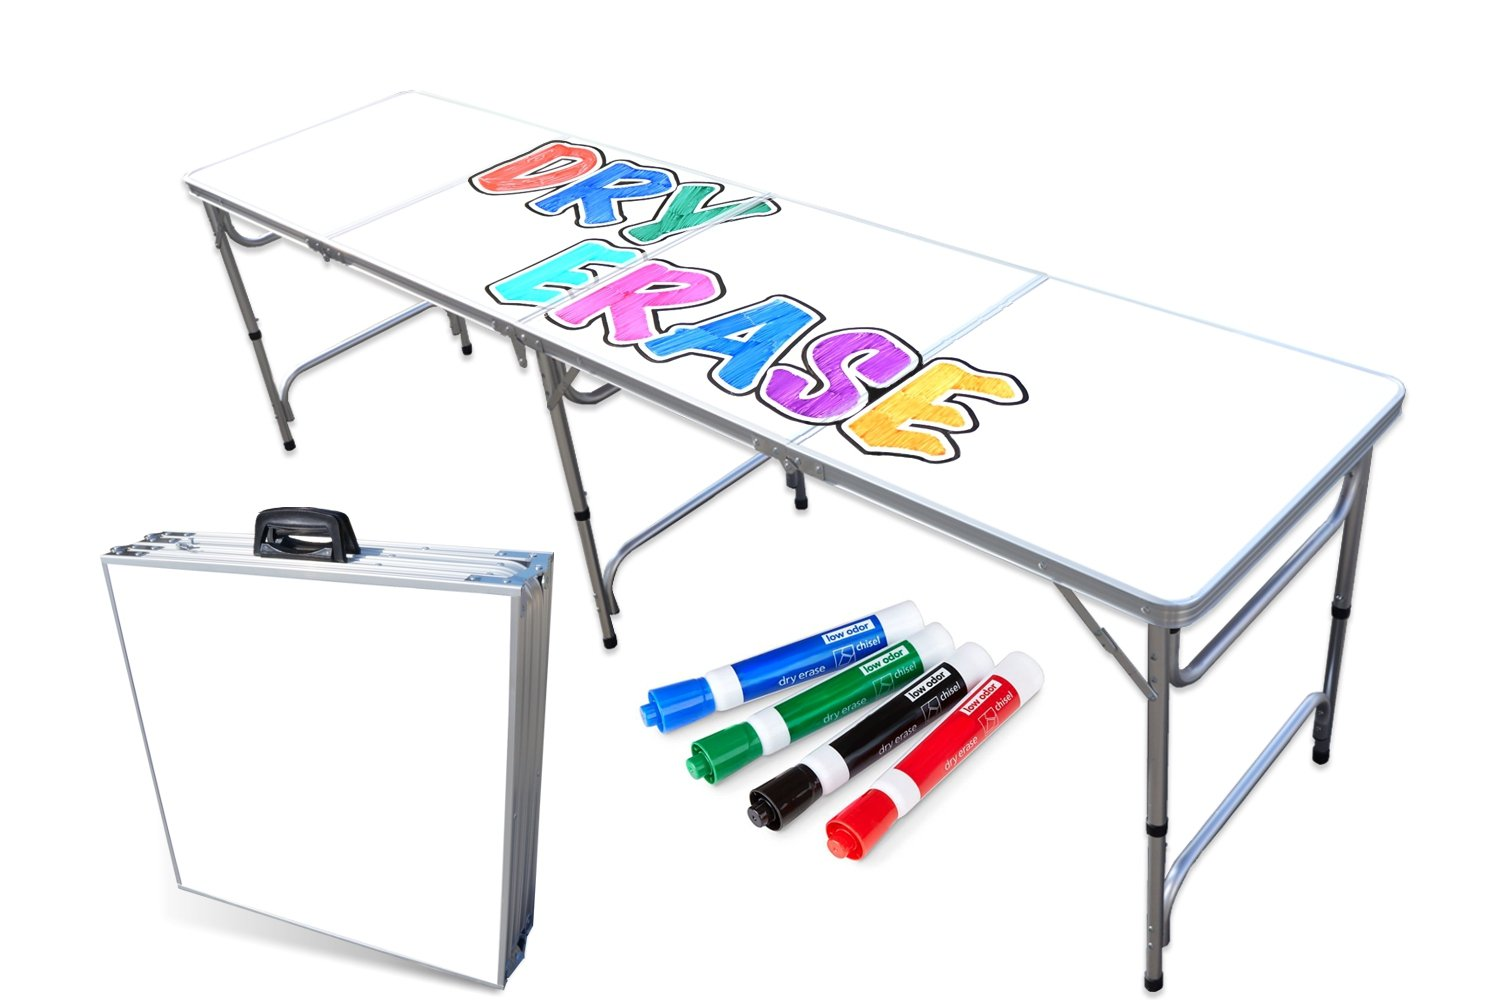 Splash Graphic 8-Foot Professional Beer Pong Table w// Optional Bluetooth Speaker /& Holes